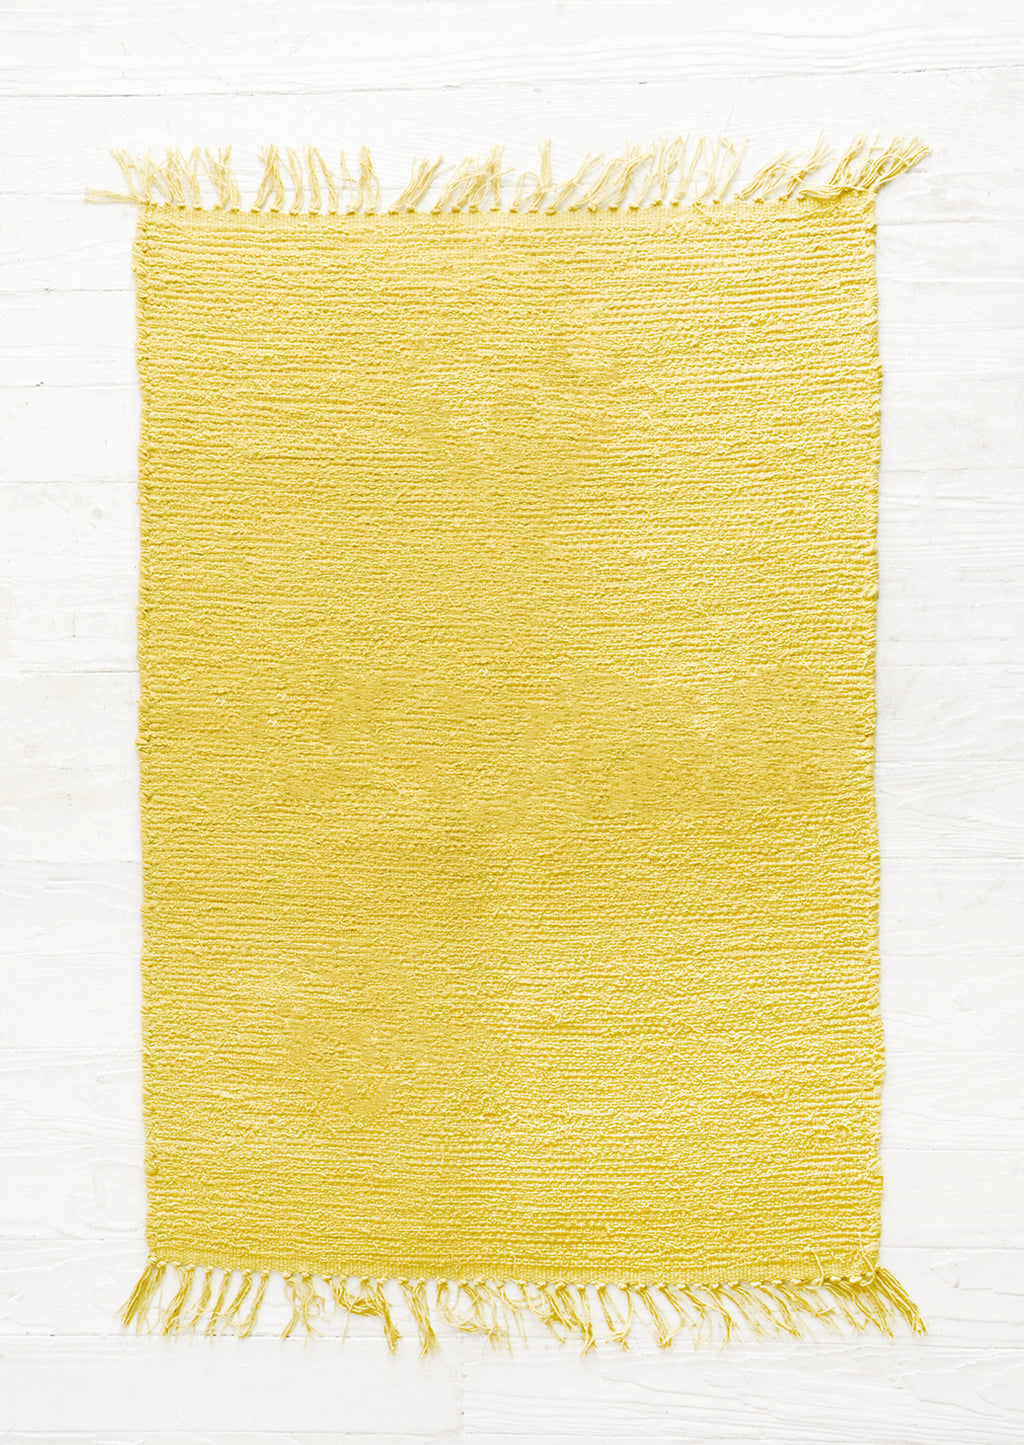 Sulfur: Cotton flatweave rug in solid color yellow green with slight texture, fringe trim on two ends